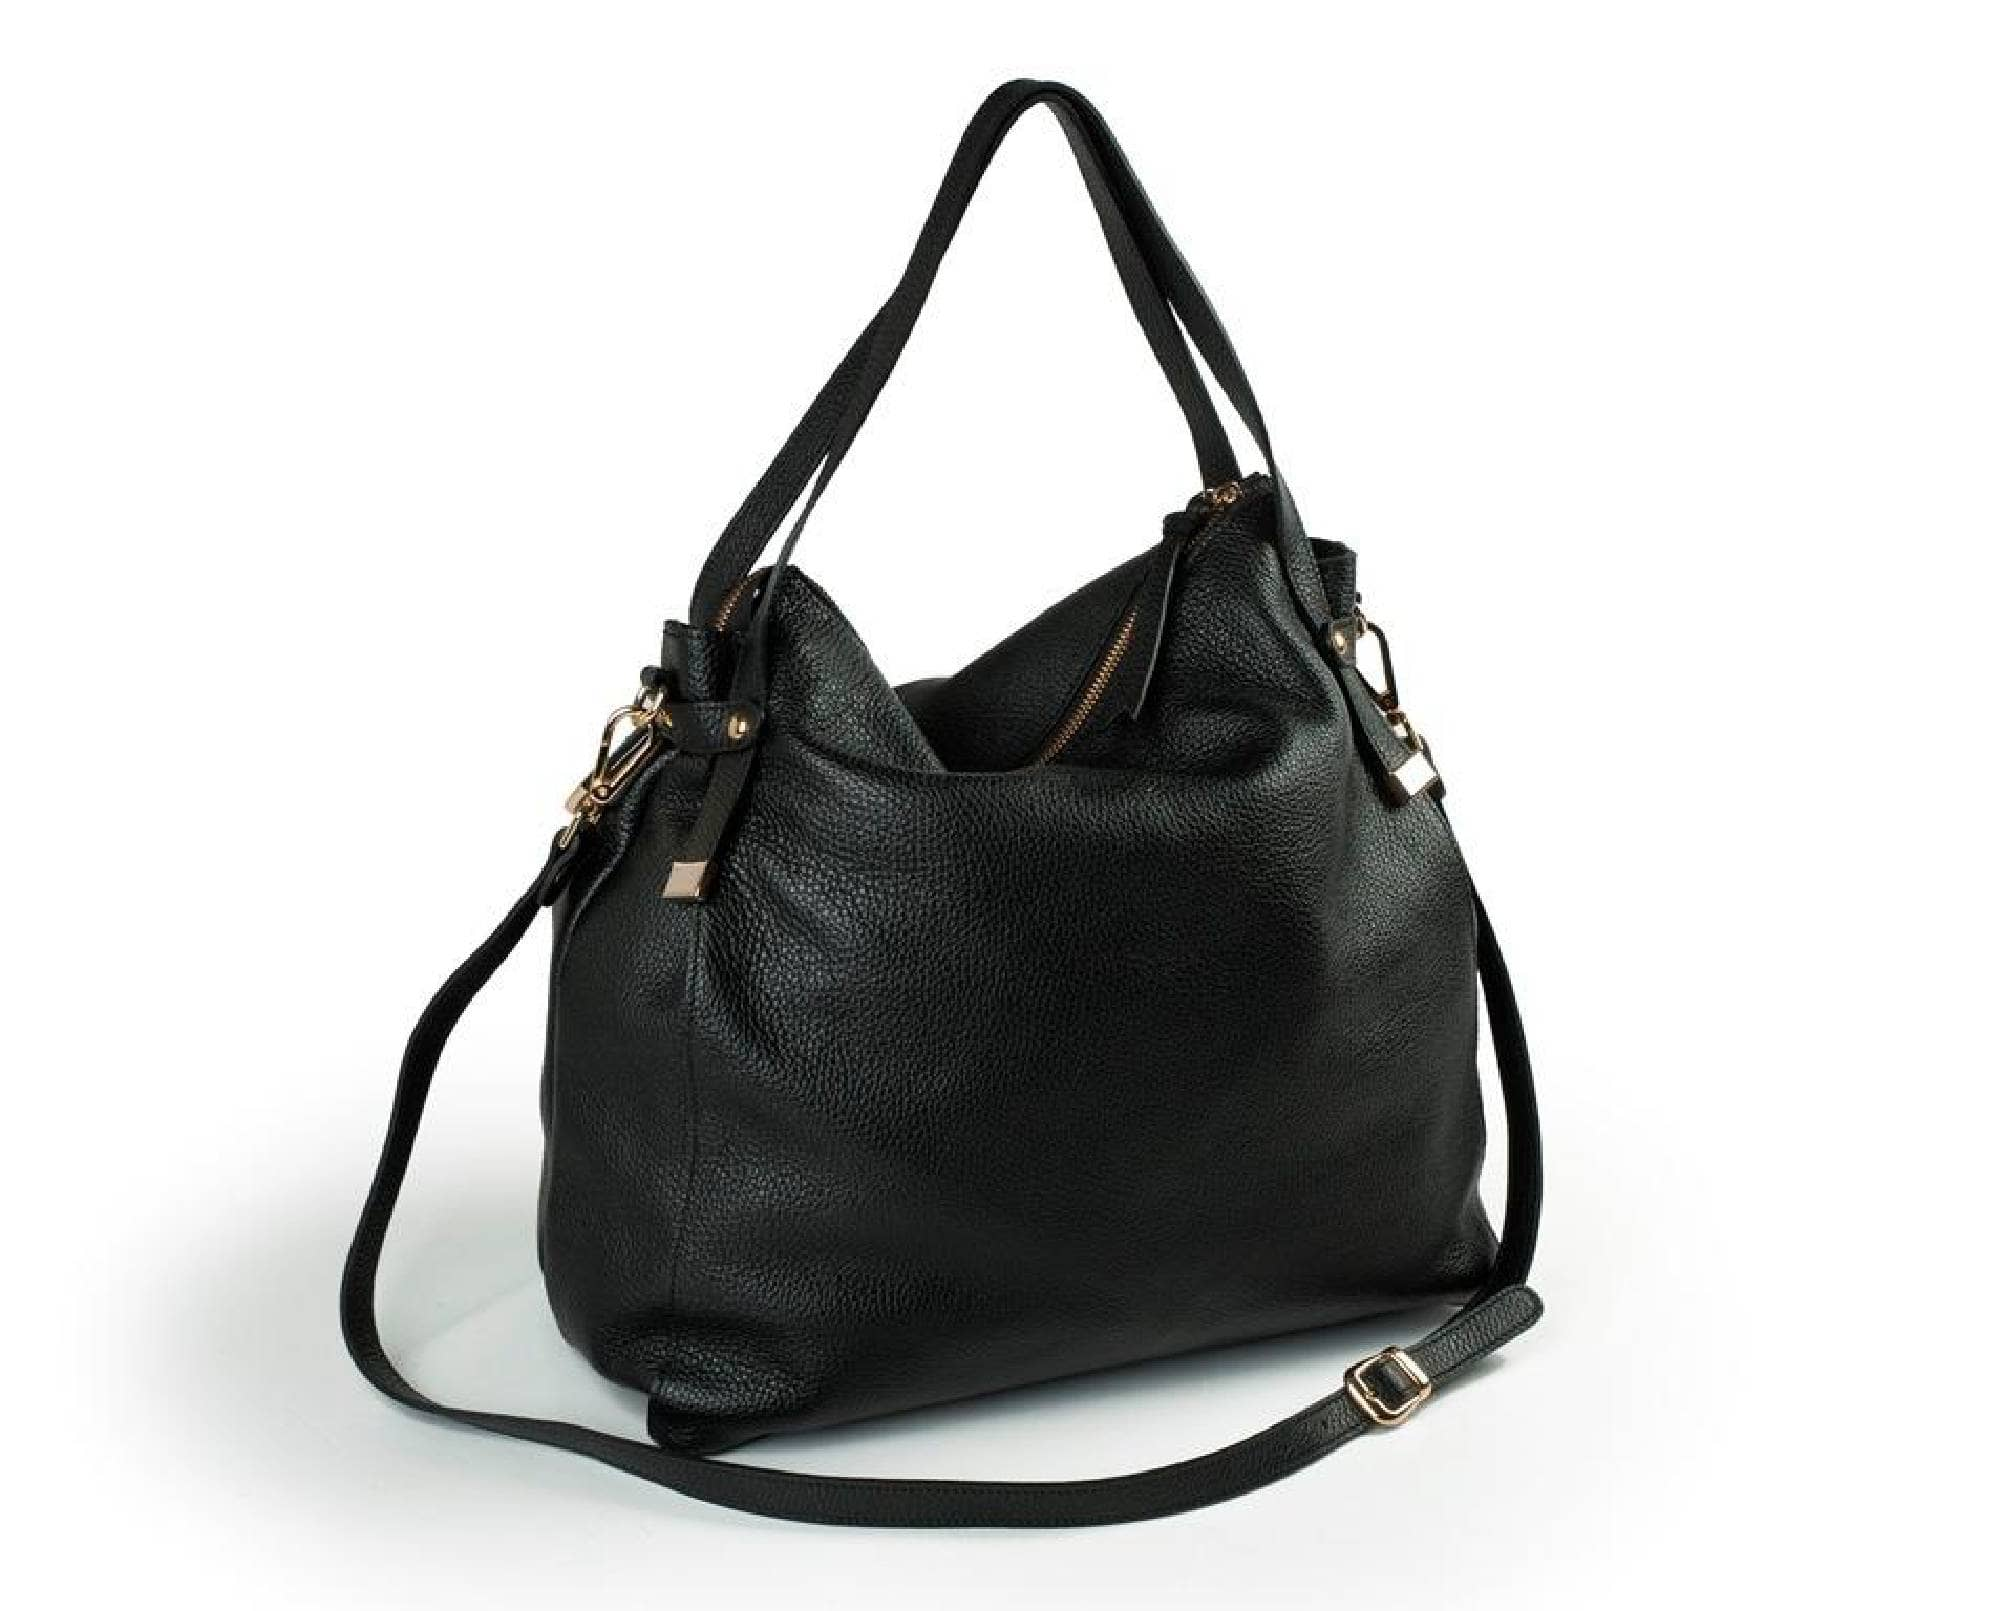 Italian handbags: wholesale Italian handbags from manufacturers, artisans and brands in italy